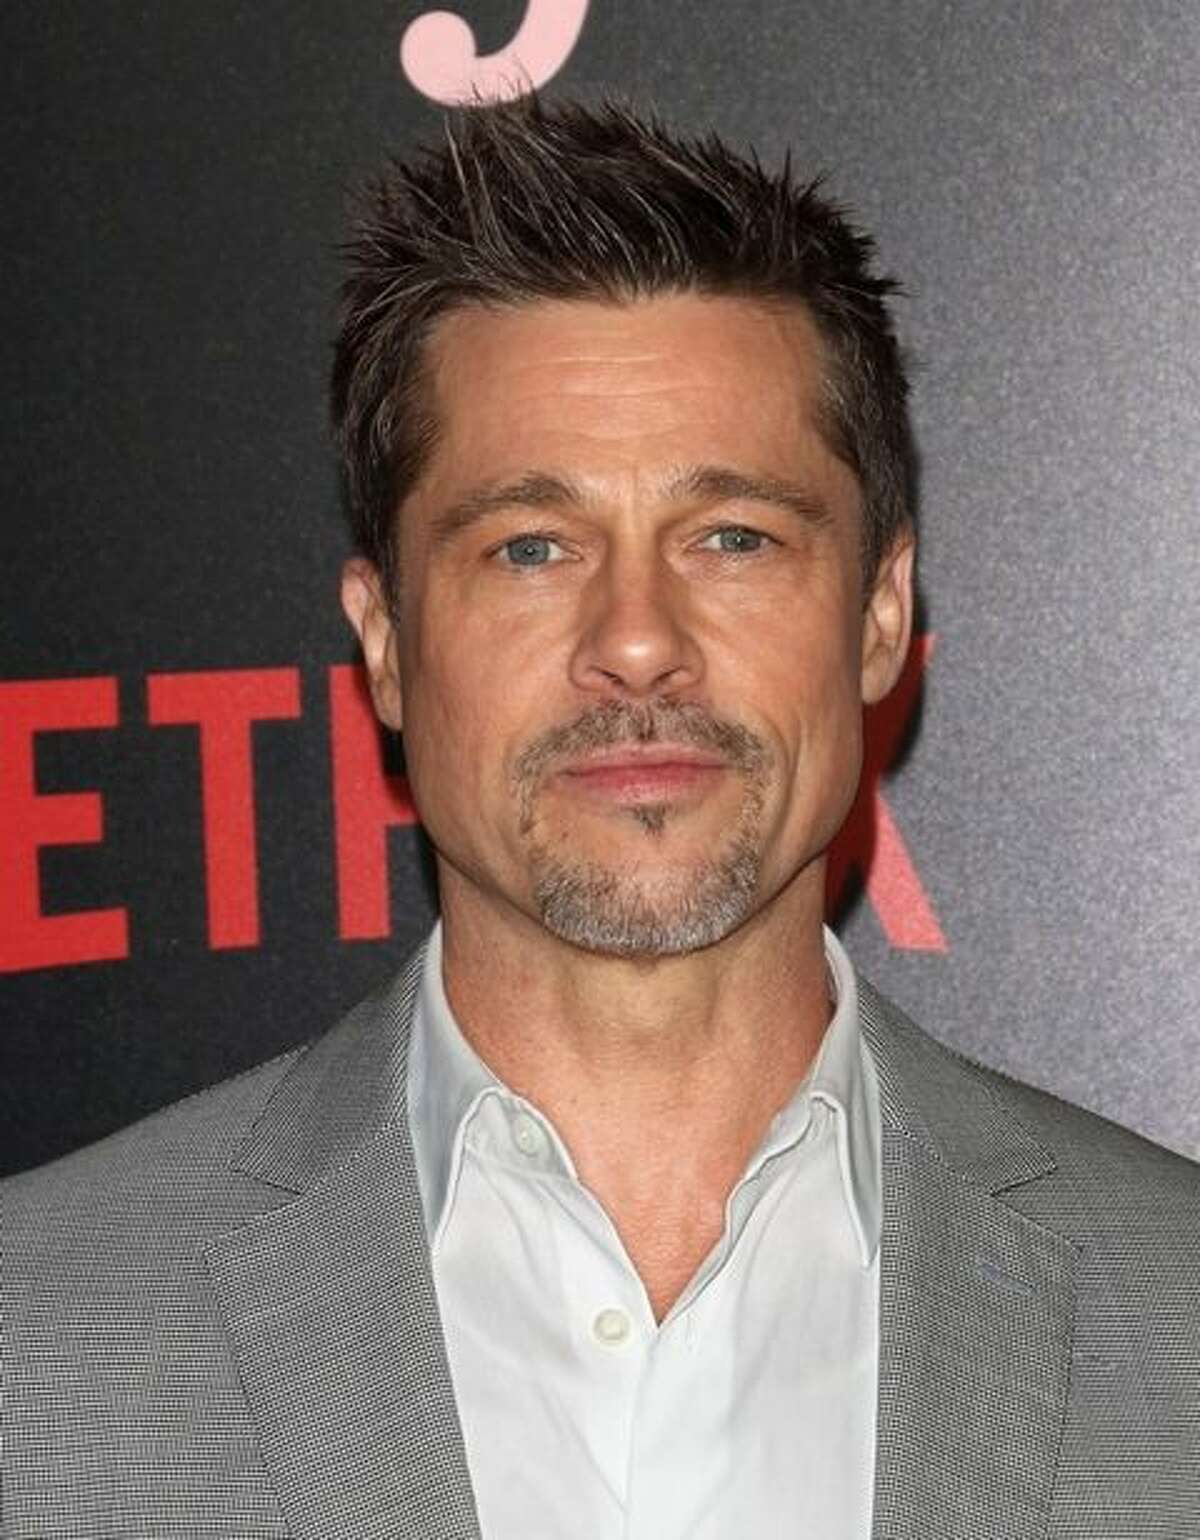 Brad Pitt Real name: William Bradley Pitt